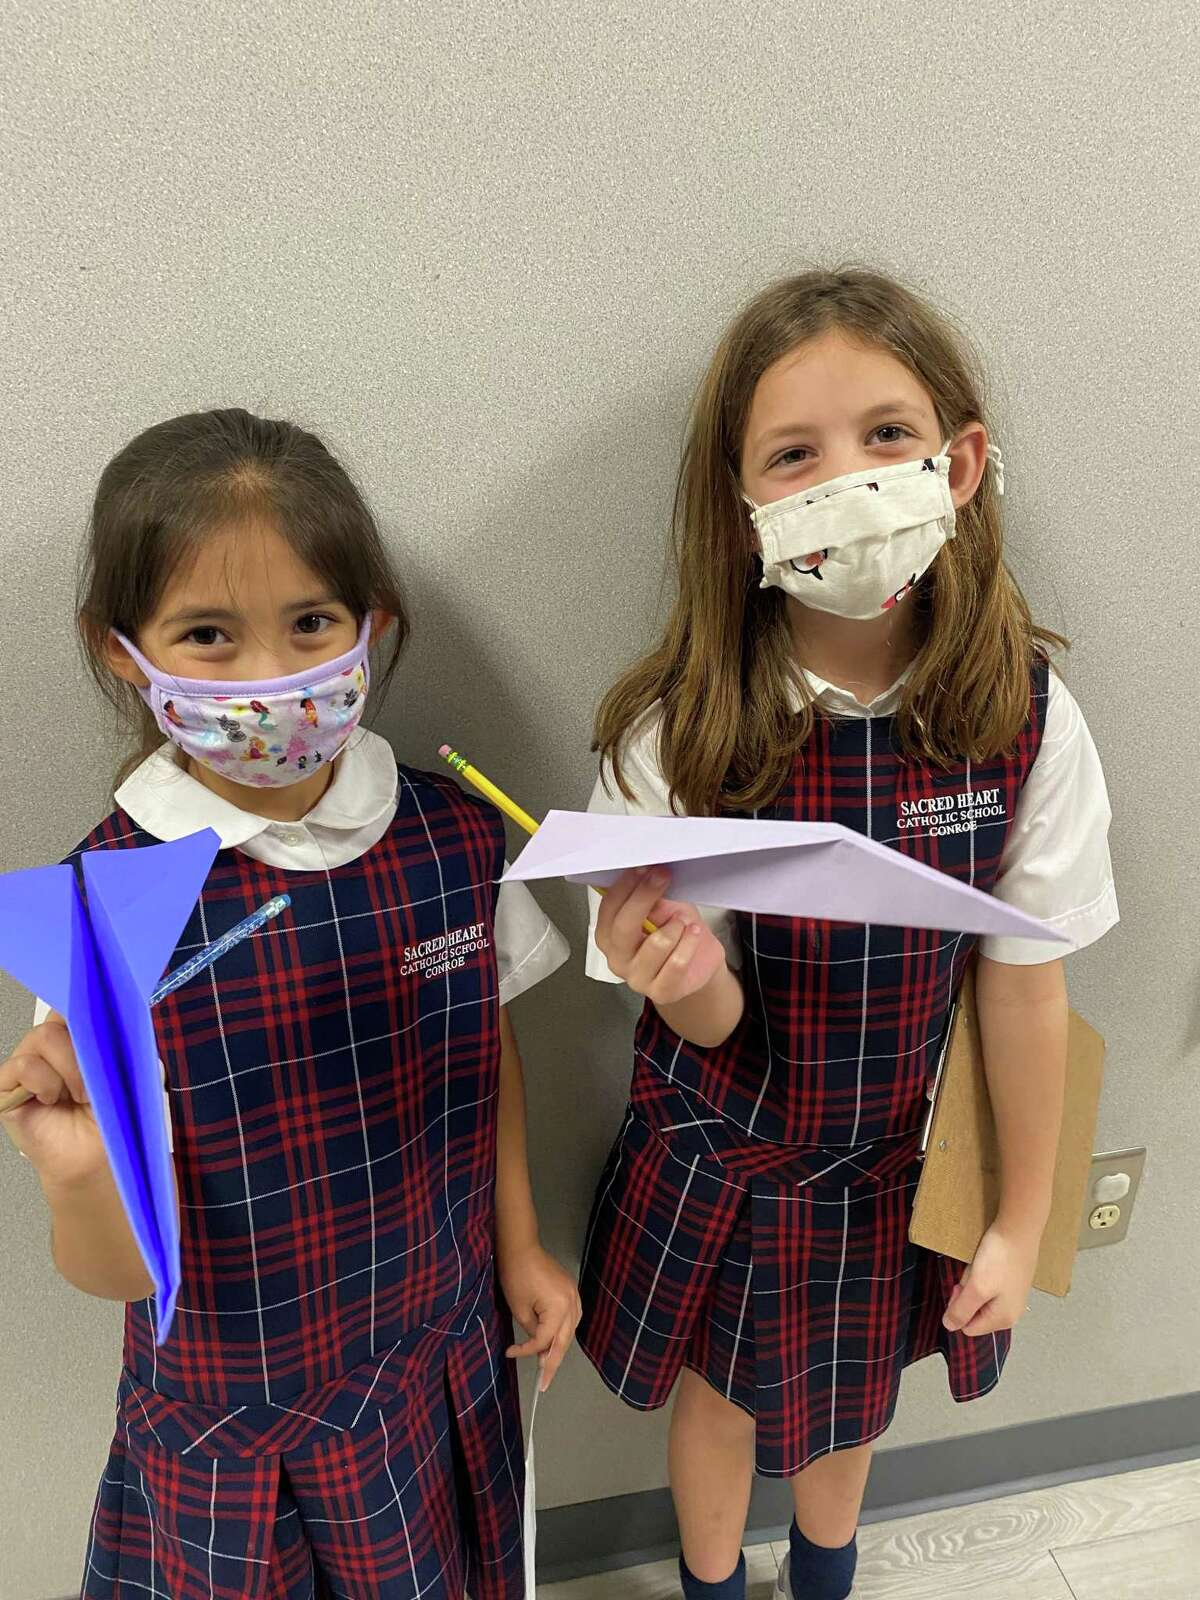 Second graders Ally Gonzales and Anna Beth Lee discover how to apply the scientific method during a S.T.R.E.A.M. (Science, Technology, Religion, Engineering, Art, and Math) activity with airplanes during Catholic Schools Week at Sacred Heart Catholic School.